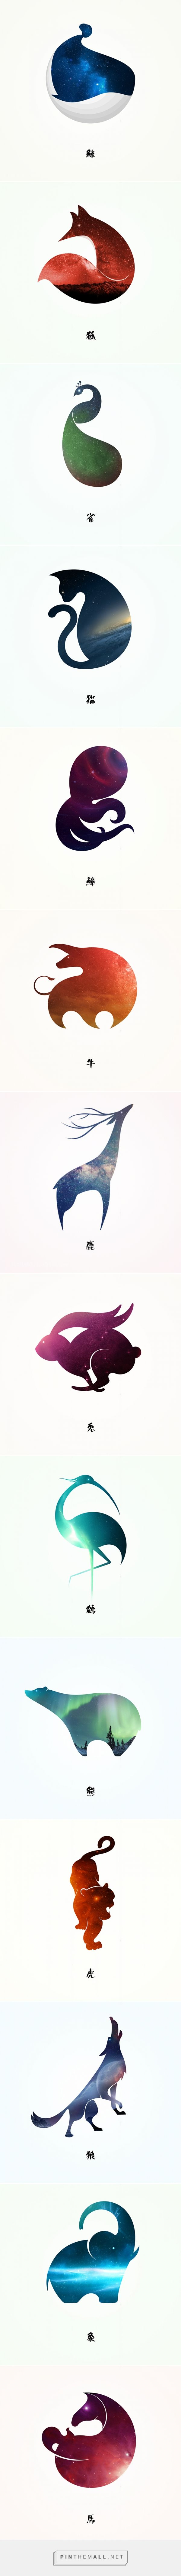 Starry Animals by XuDong He | Fivestar Branding Agency – Design and Branding Agency & Curated Inspiration Gallery